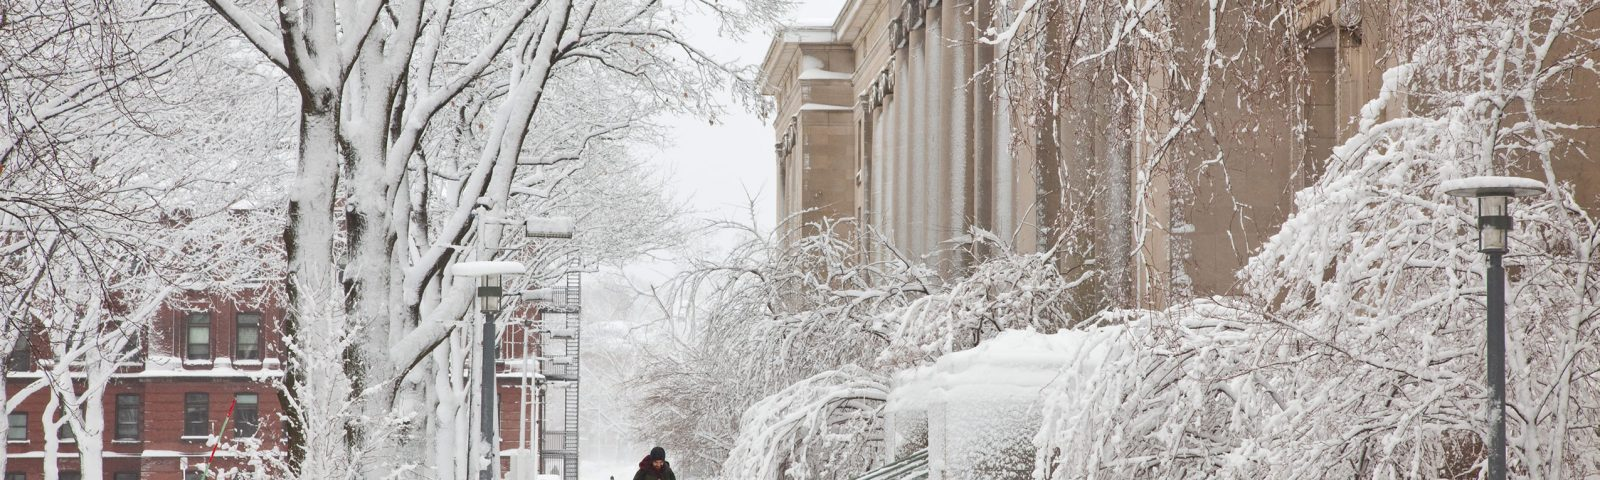 A student walks through snow in front of Langdell Hall